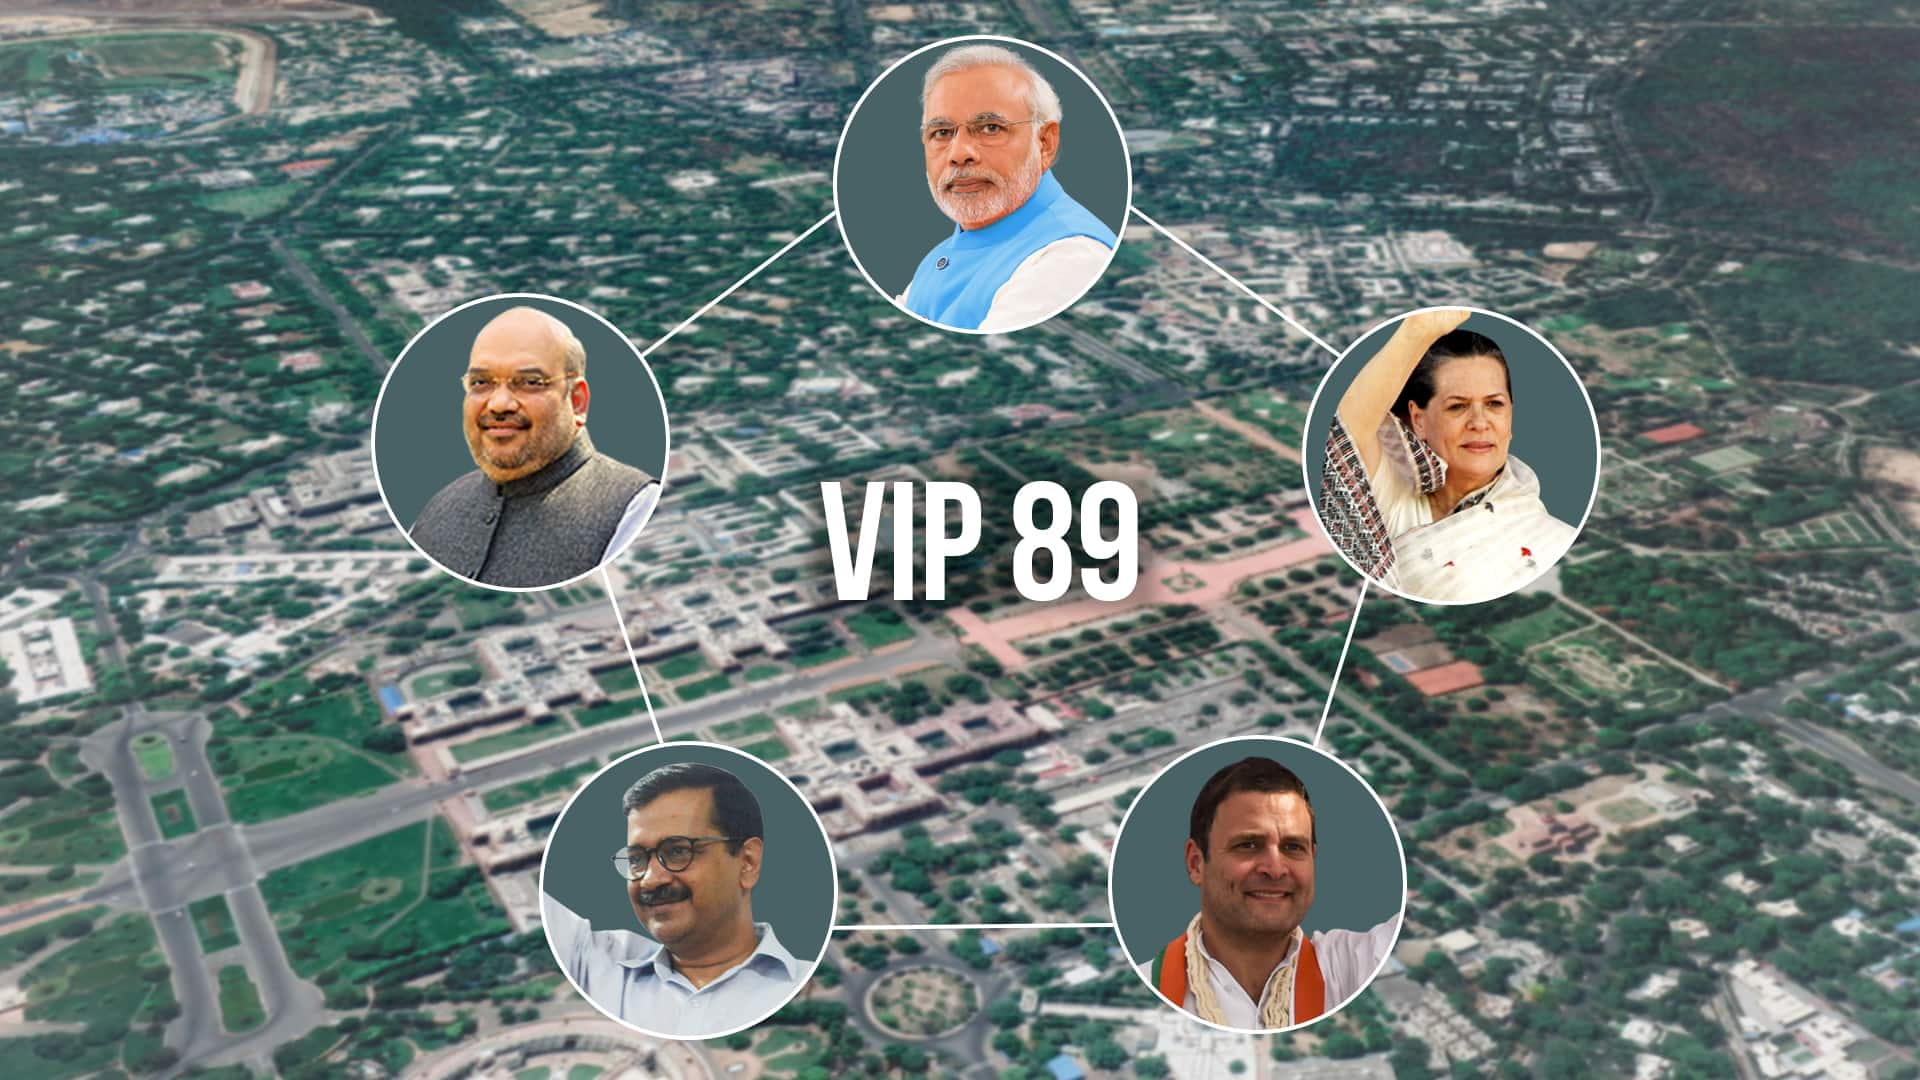 Plan to protect Lutyen's VIP-89 from aerial, chemical attacks